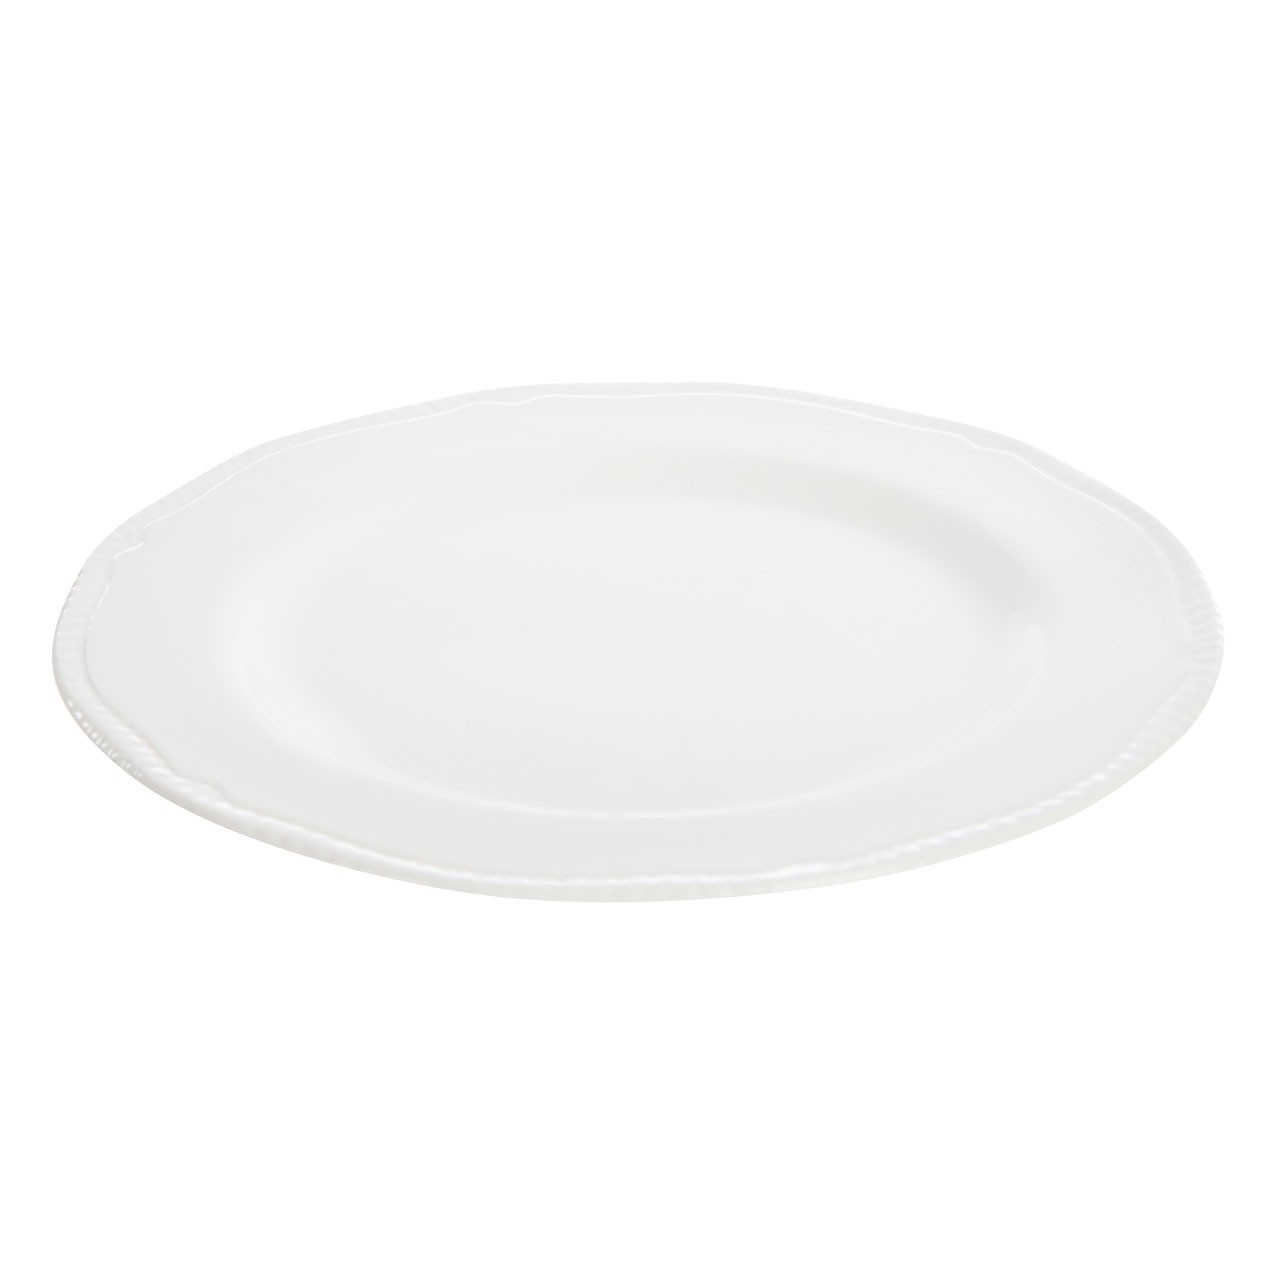 Plate Large Embossed White